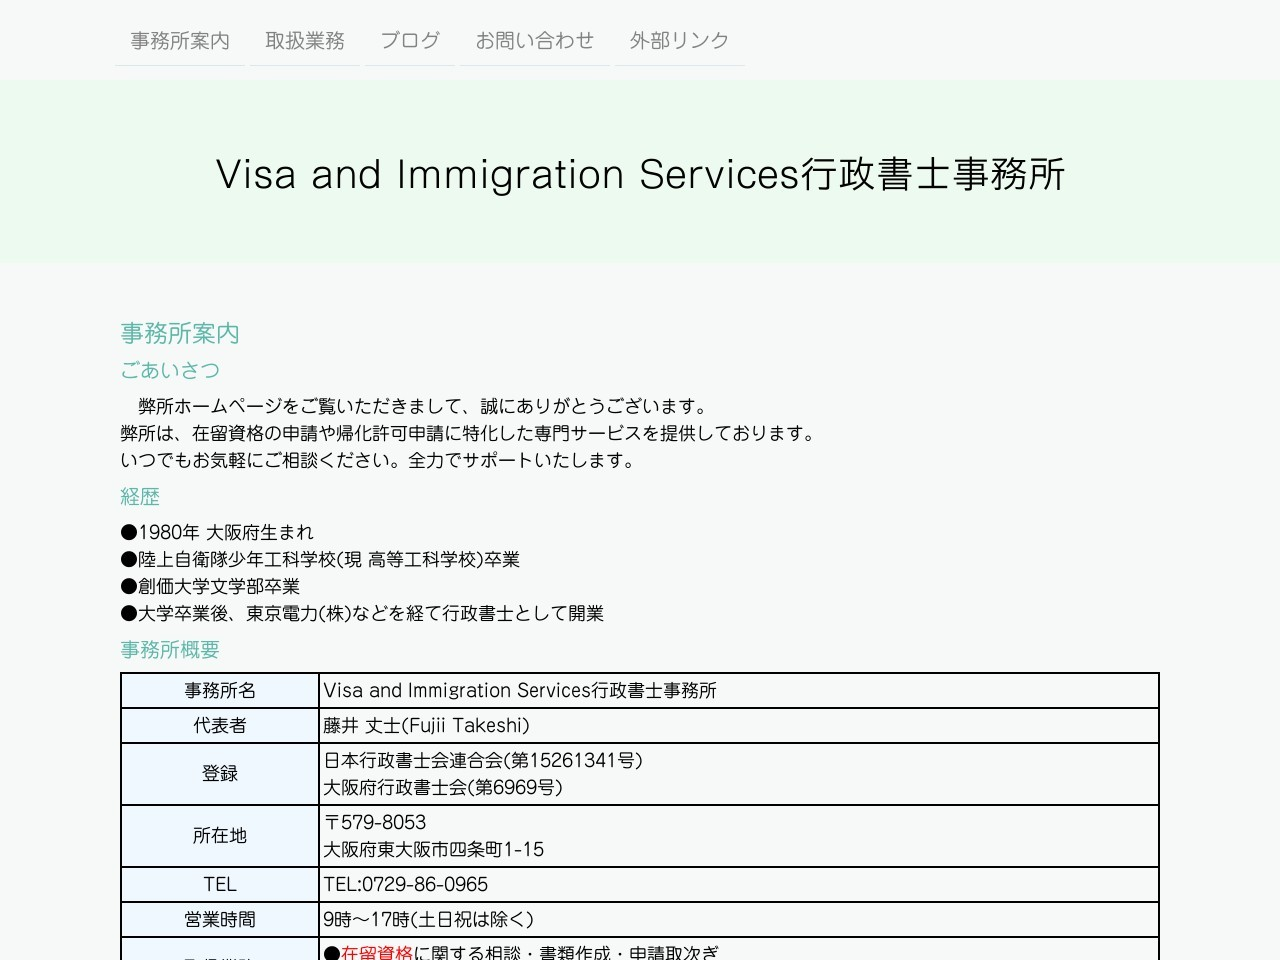 VisaandImmigrationServices行政書士事務所